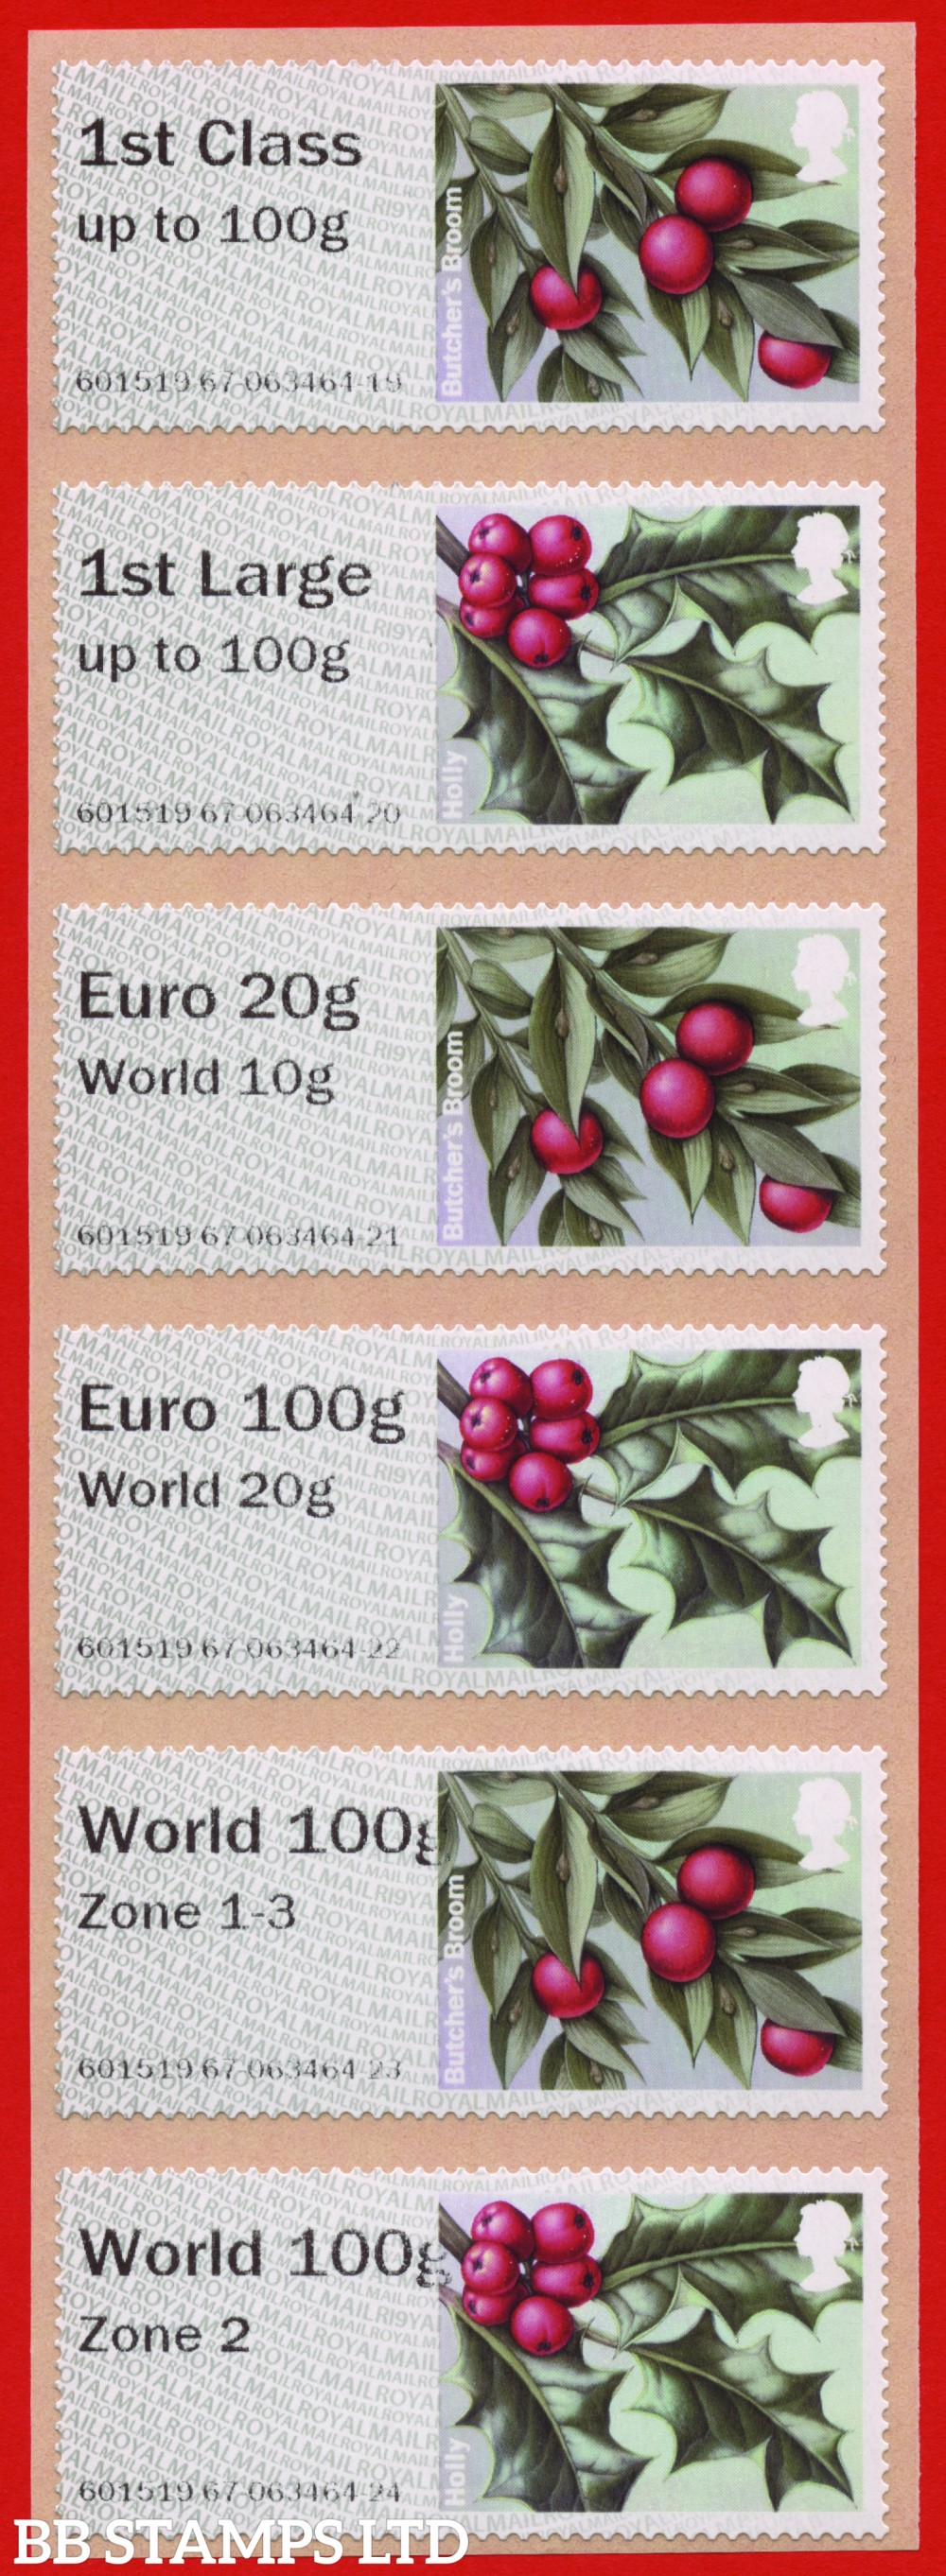 W/Greenery (greenish grey 2017 issue) (TIIA), set of 6 (designs may vary) with 01/09/20 new overseas stamps: 1st/1stL/Euro 20g World 10g, and 3 new values: Euro 100g World 20g, World 100g Zone 1-3 and World Zone 2: R19Y year code (BK30, P12)